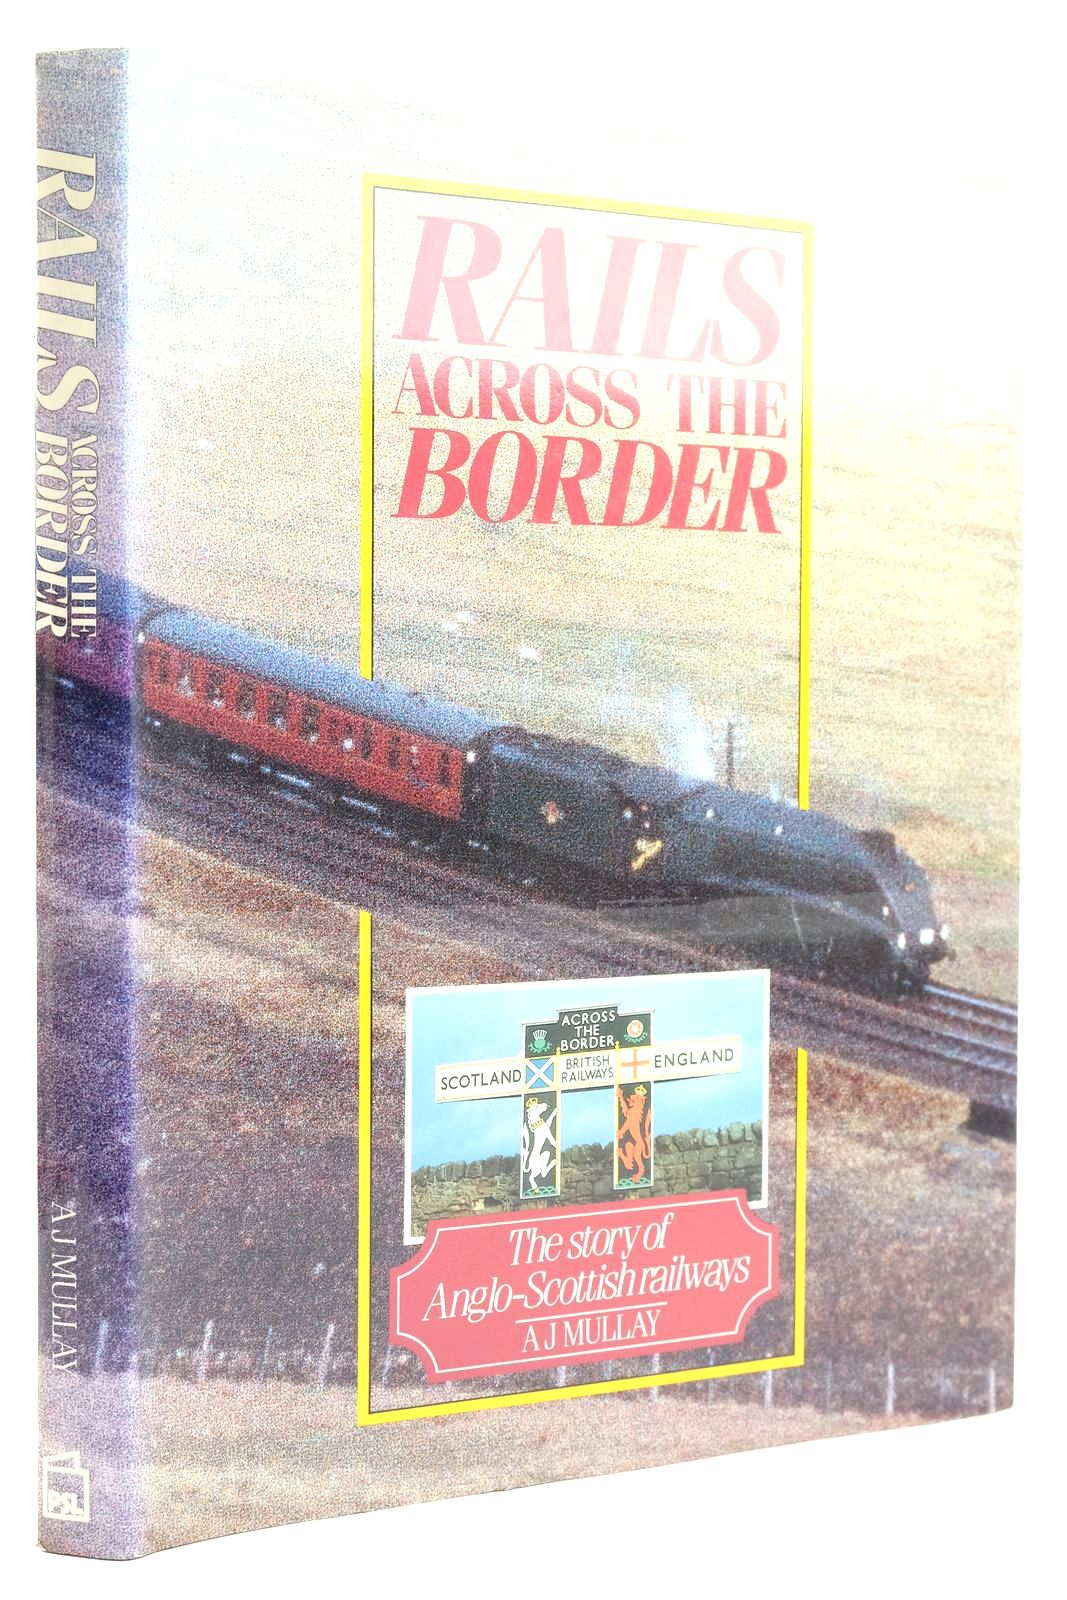 Photo of RAILS ACROSS THE BORDER THE STORY OF ANGLO-SCOTTISH RAILWAYS- Stock Number: 2133120